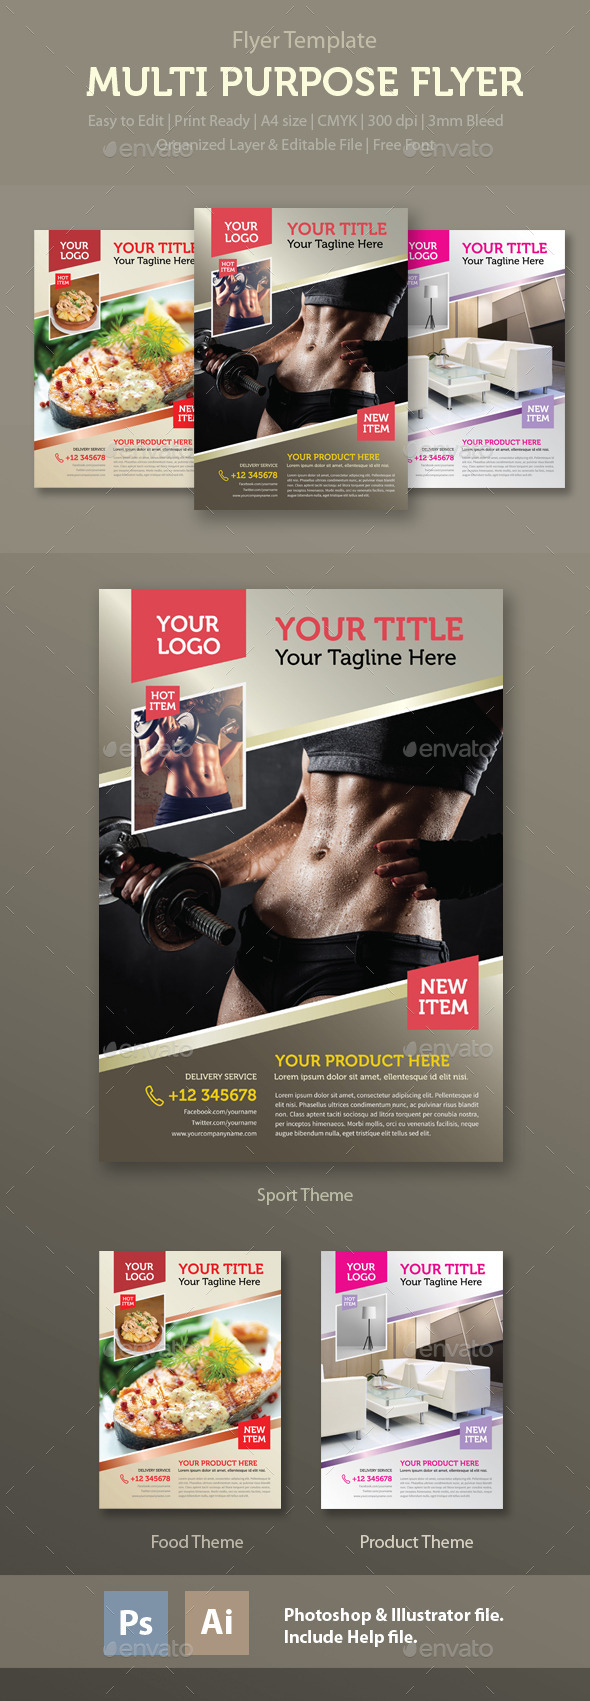 Multi Purpose Flyer Template - Commerce Flyers